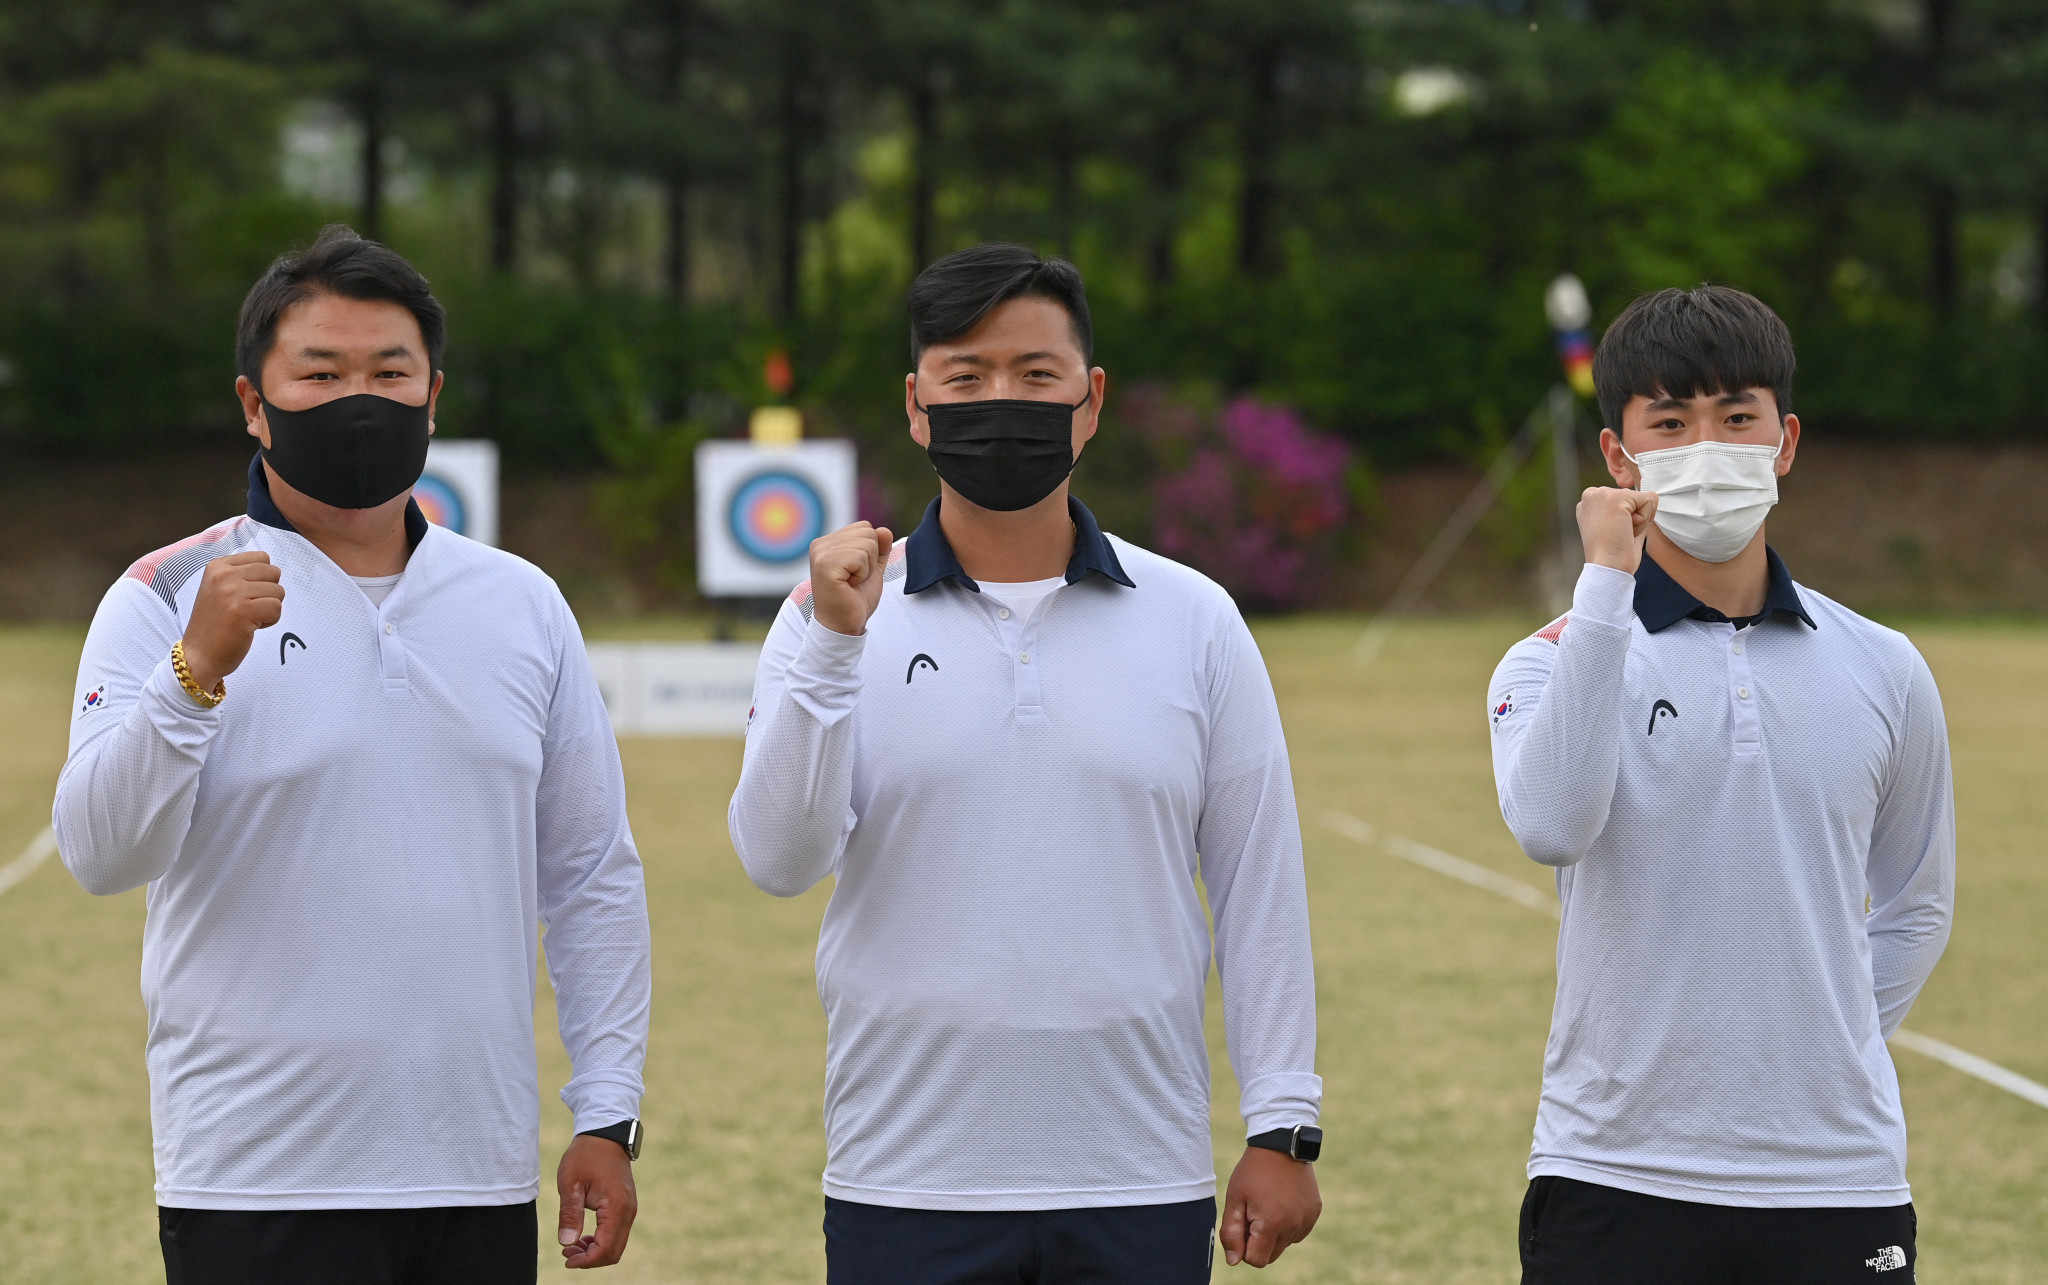 Seventeen-year-old Kim Je-deok, right, joins Olympic gold medallists Kim Woo-jin, centre, and Oh Jun-hyek in South Korea's men's archery team ©Getty Images